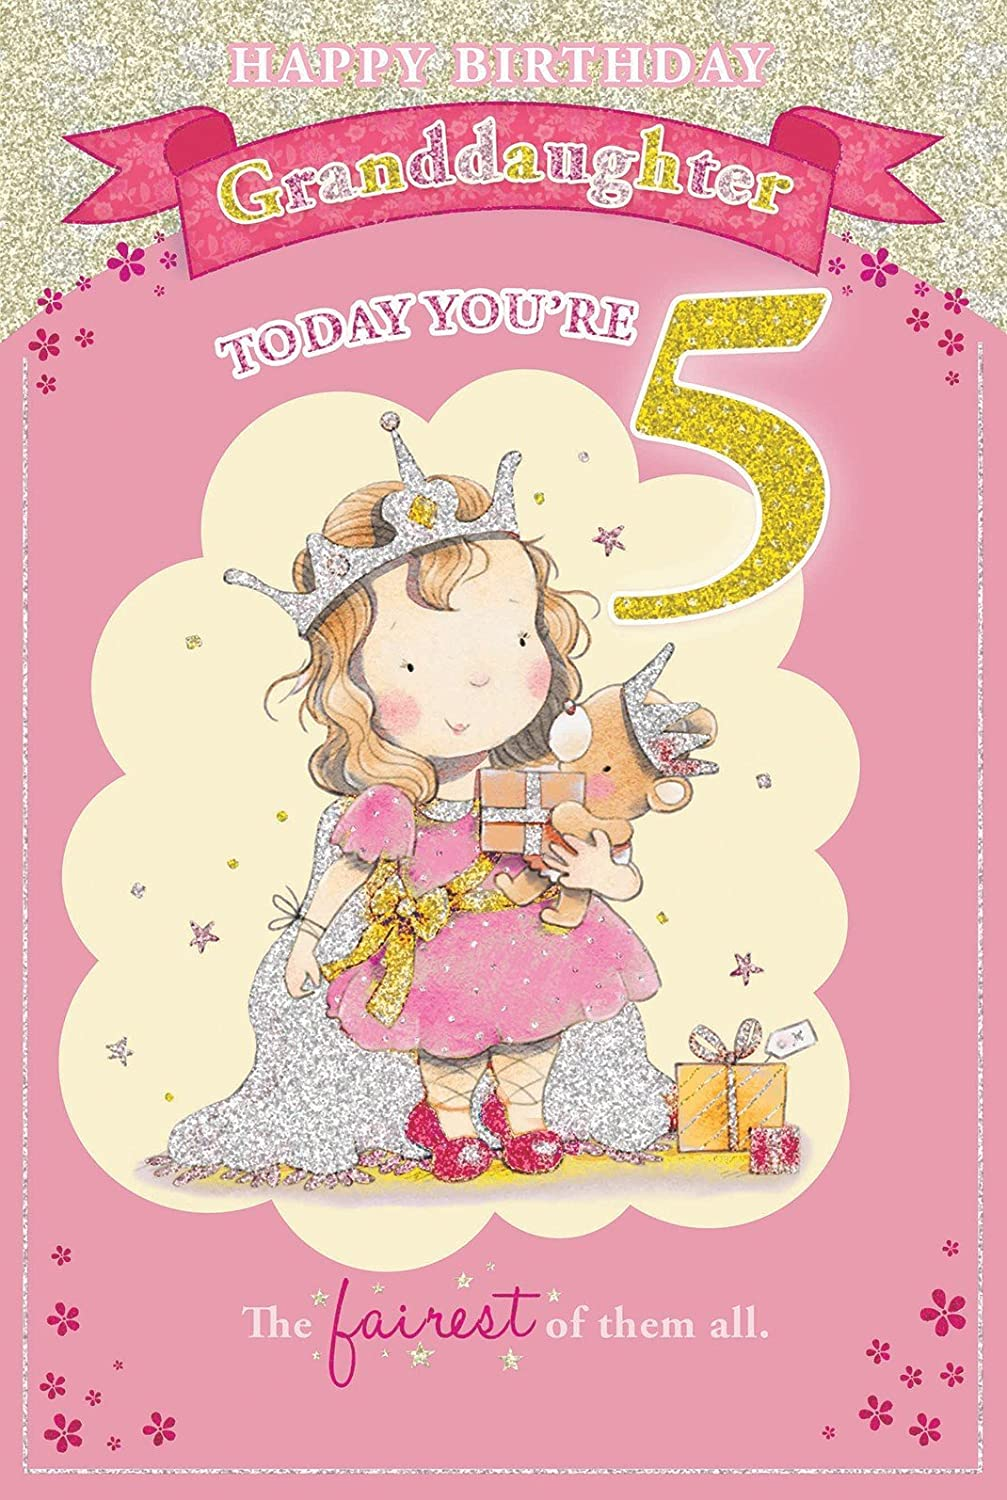 Granddaughters 5th birthday card 5 today little princess granddaughters 5th birthday card 5 today little princess holding gift 9 x 6 amazon toys games bookmarktalkfo Image collections